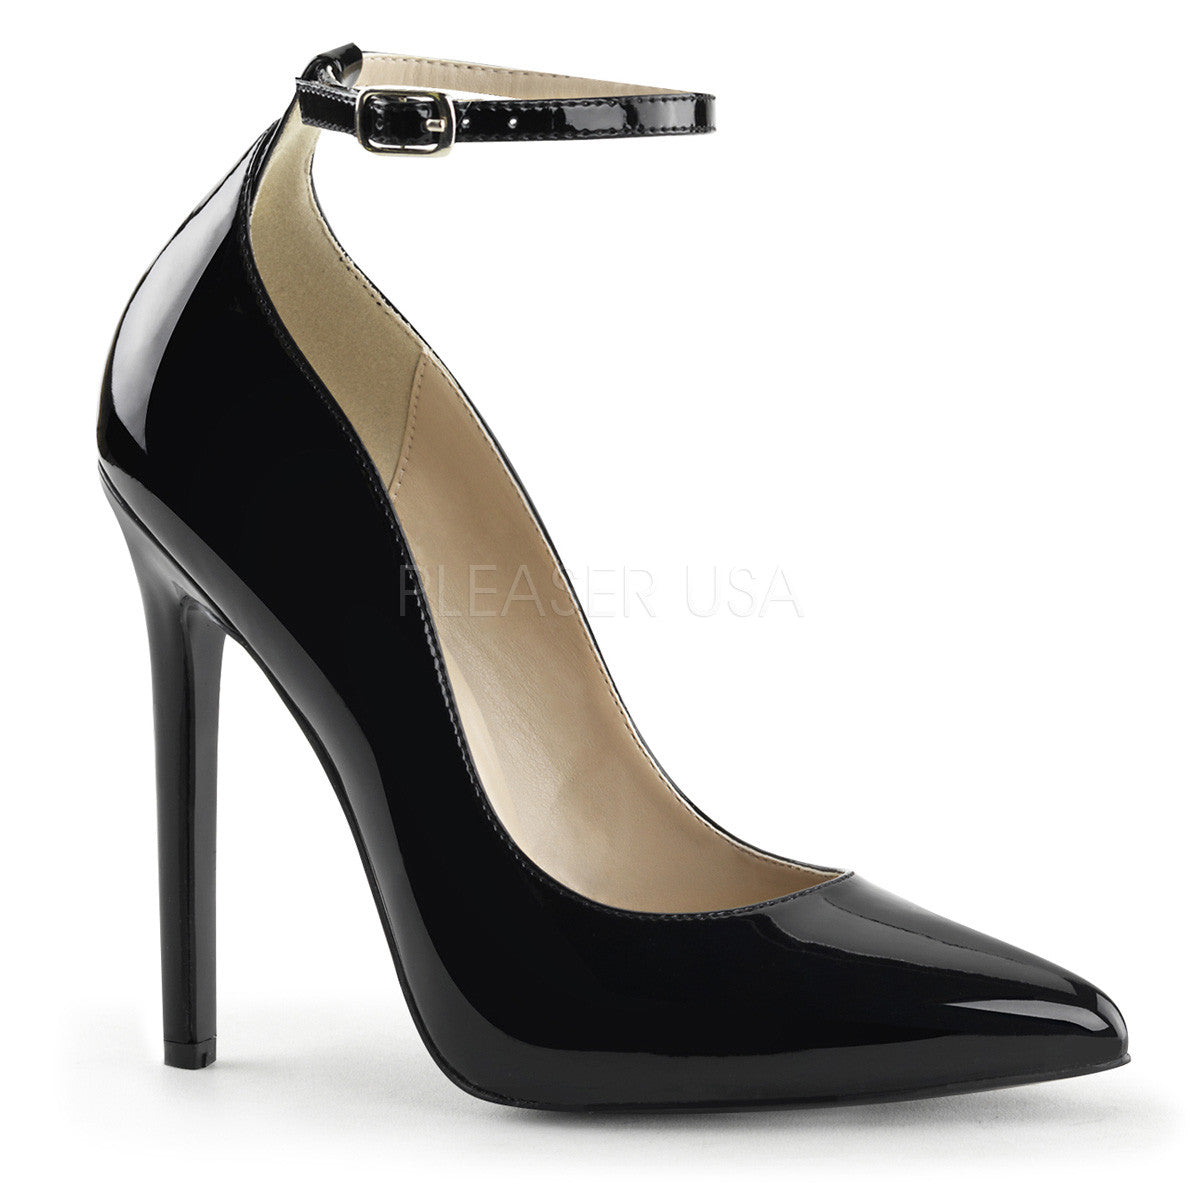 Pleaser SEXY-23 Black Patent Pointed Toe Pumps - Shoecup.com